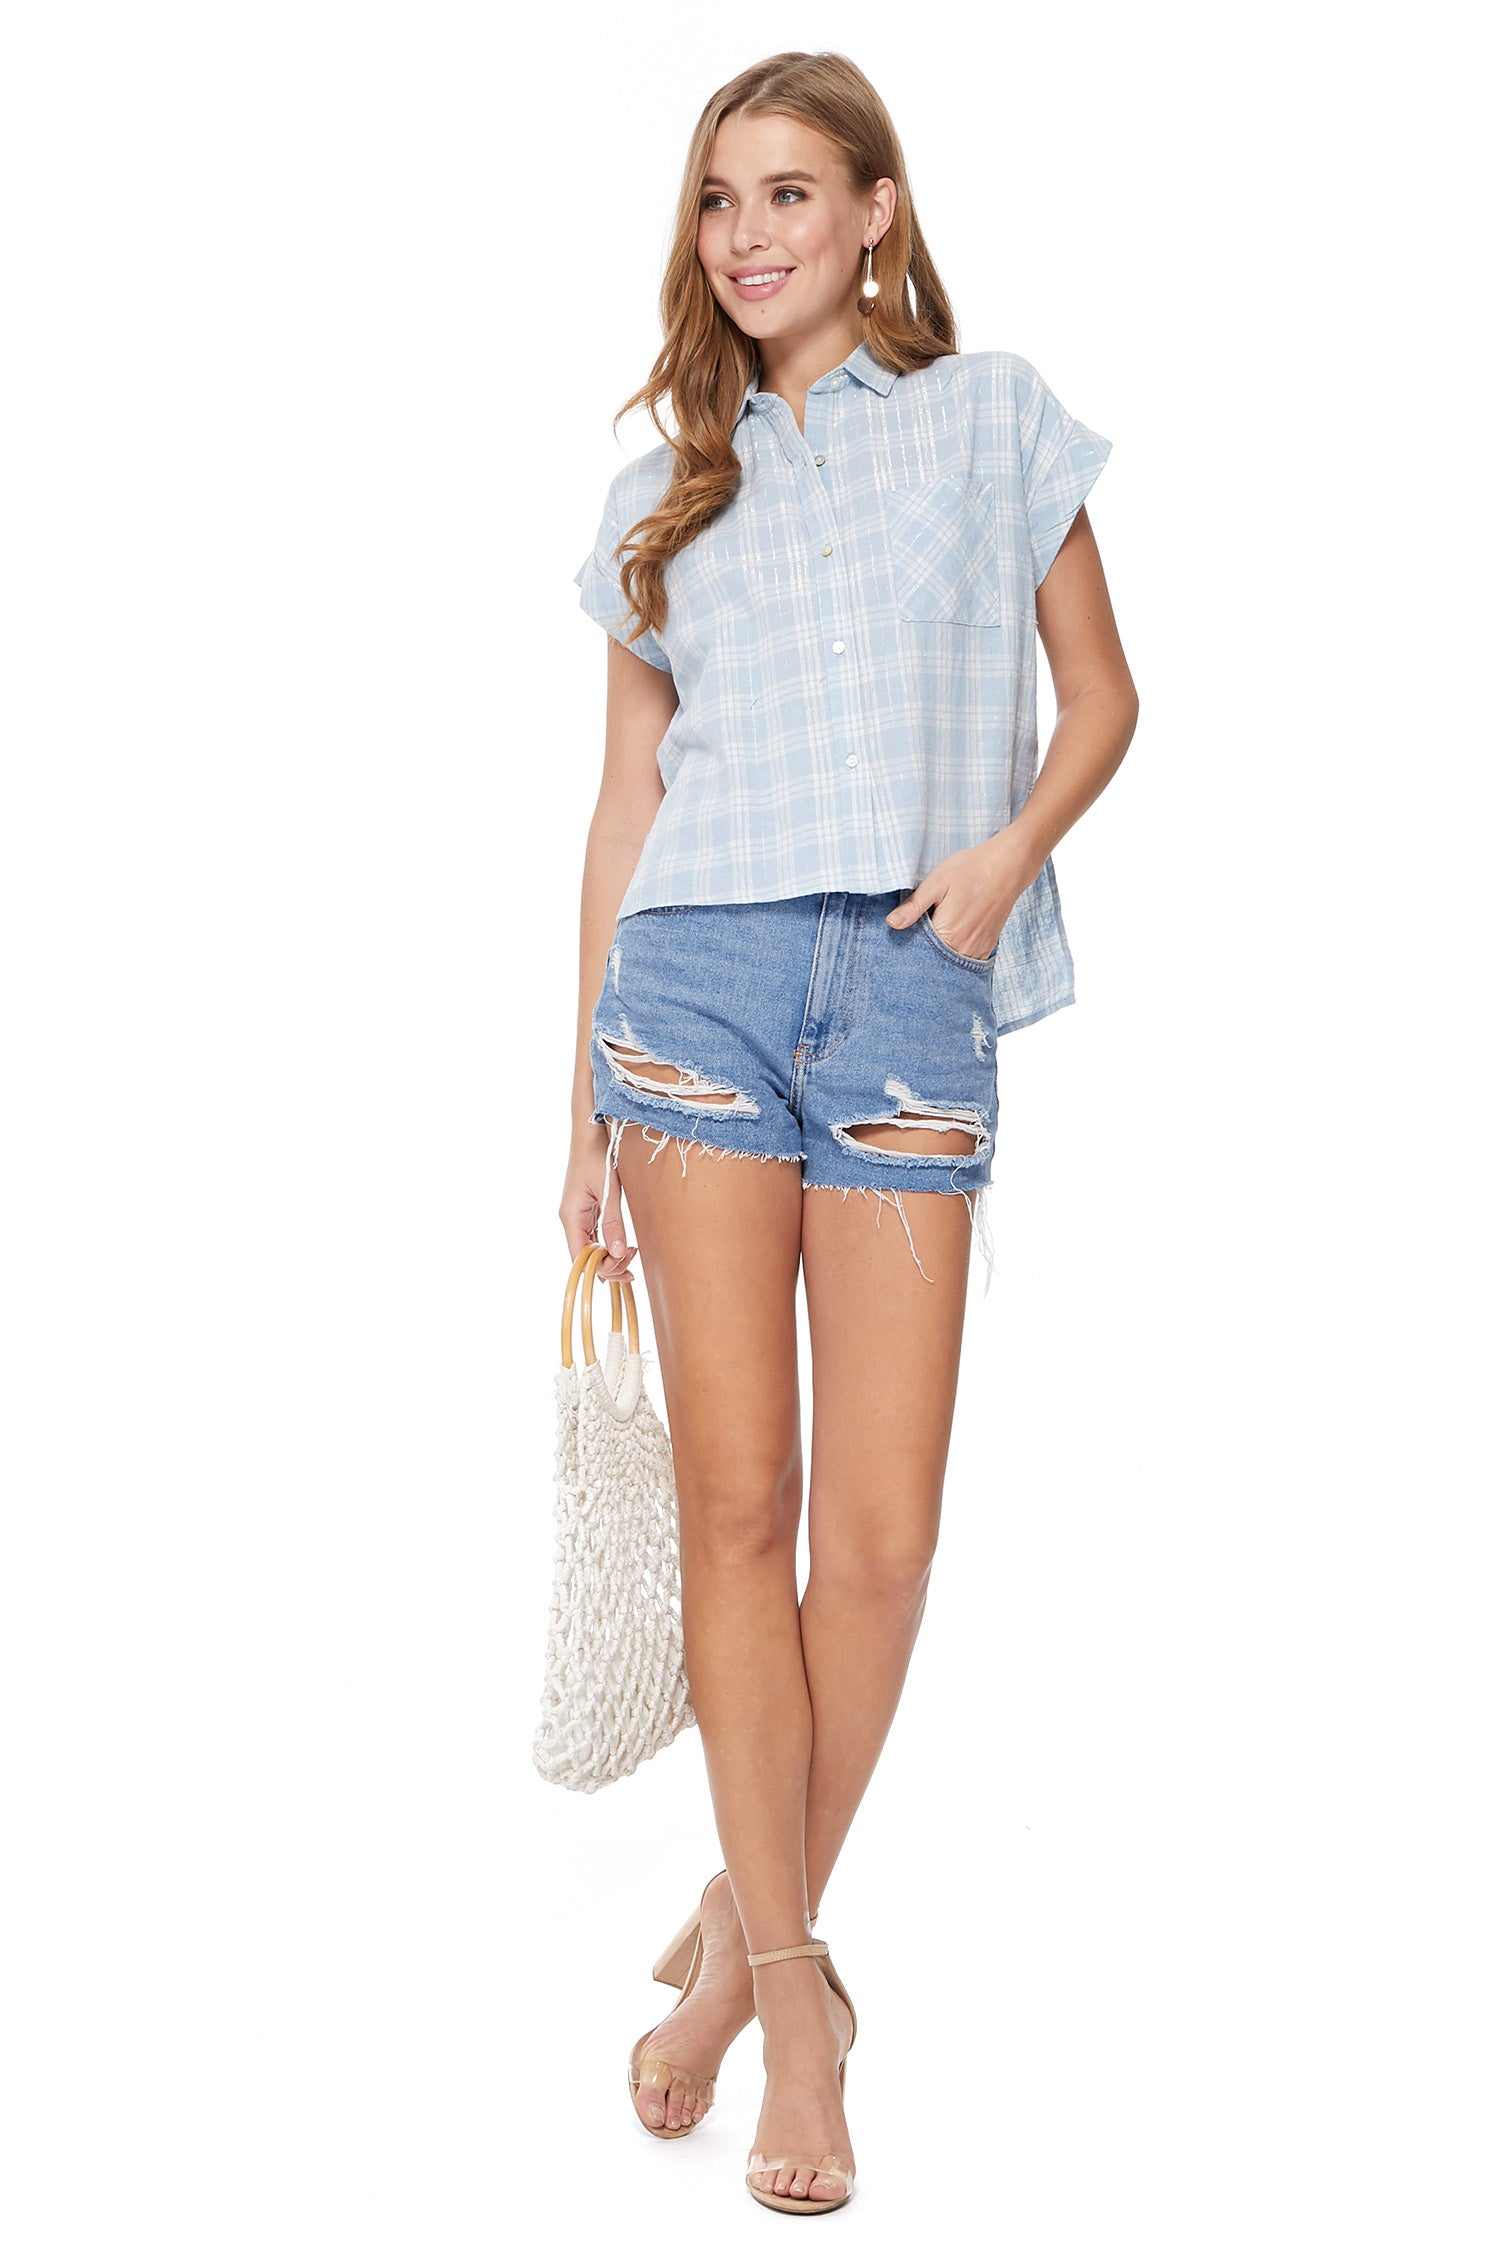 Zelie Top in Crème/Blue/Silver Plaid